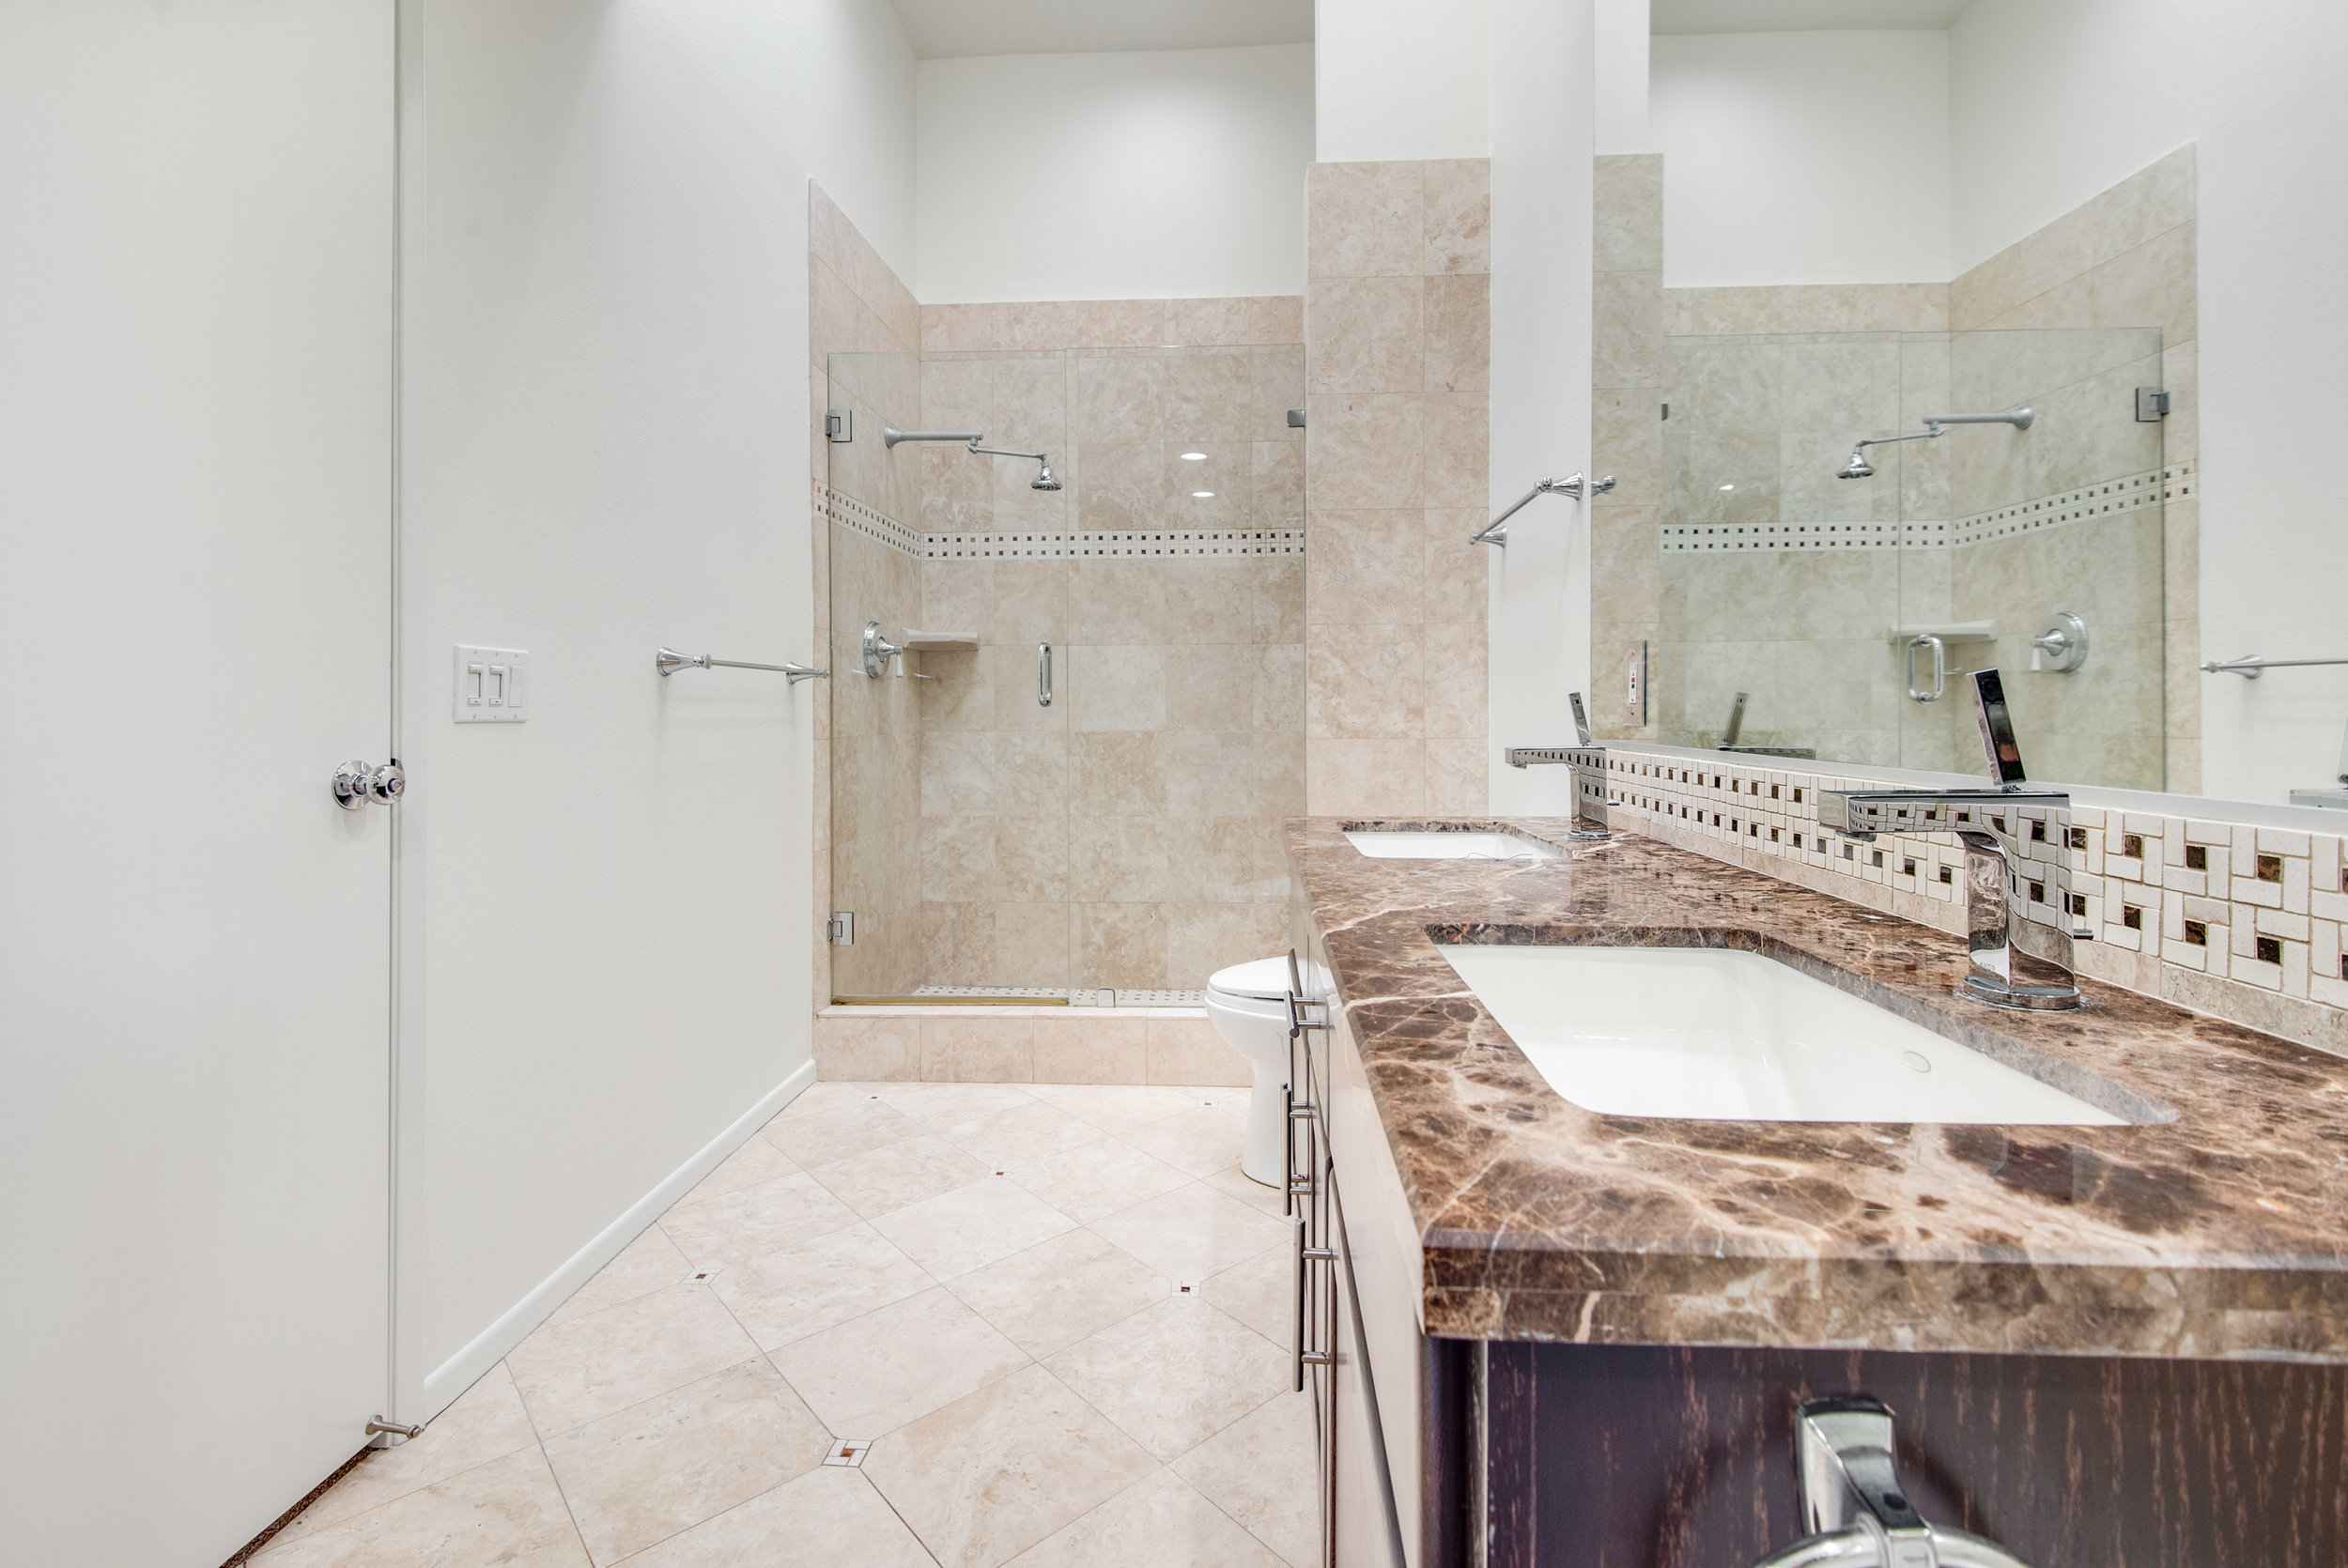 012 Master Bathroom 1735 Malcolm Avenue For Sale Lease The Malibu Life Team Luxury Real Estate.jpg